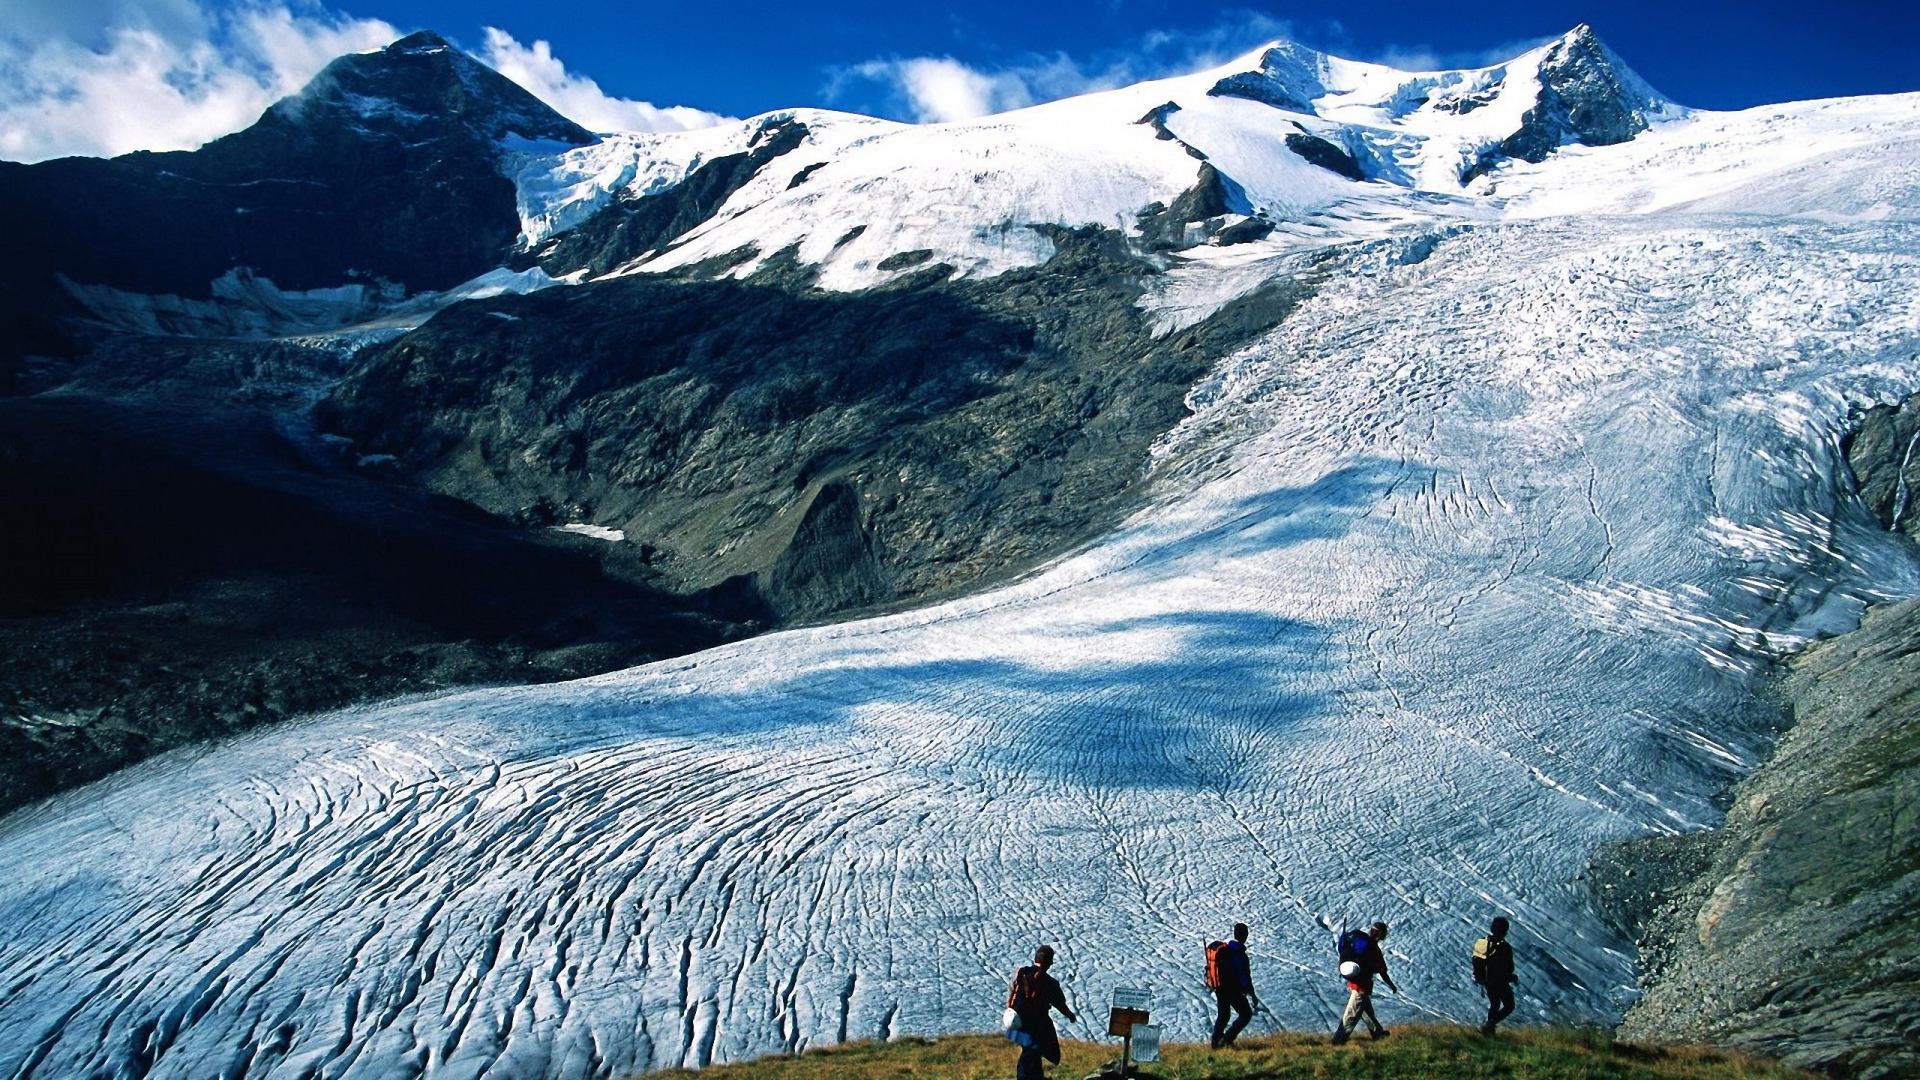 Wallpaper Glacier Alaska Mountain Rock Usa Hohe Tauern National Park Austria 1920x1080 Wallpaper Teahub Io Find best alaska wallpaper and ideas by device, resolution, and quality (hd, 4k) from a curated website list. wallpaper glacier alaska mountain rock